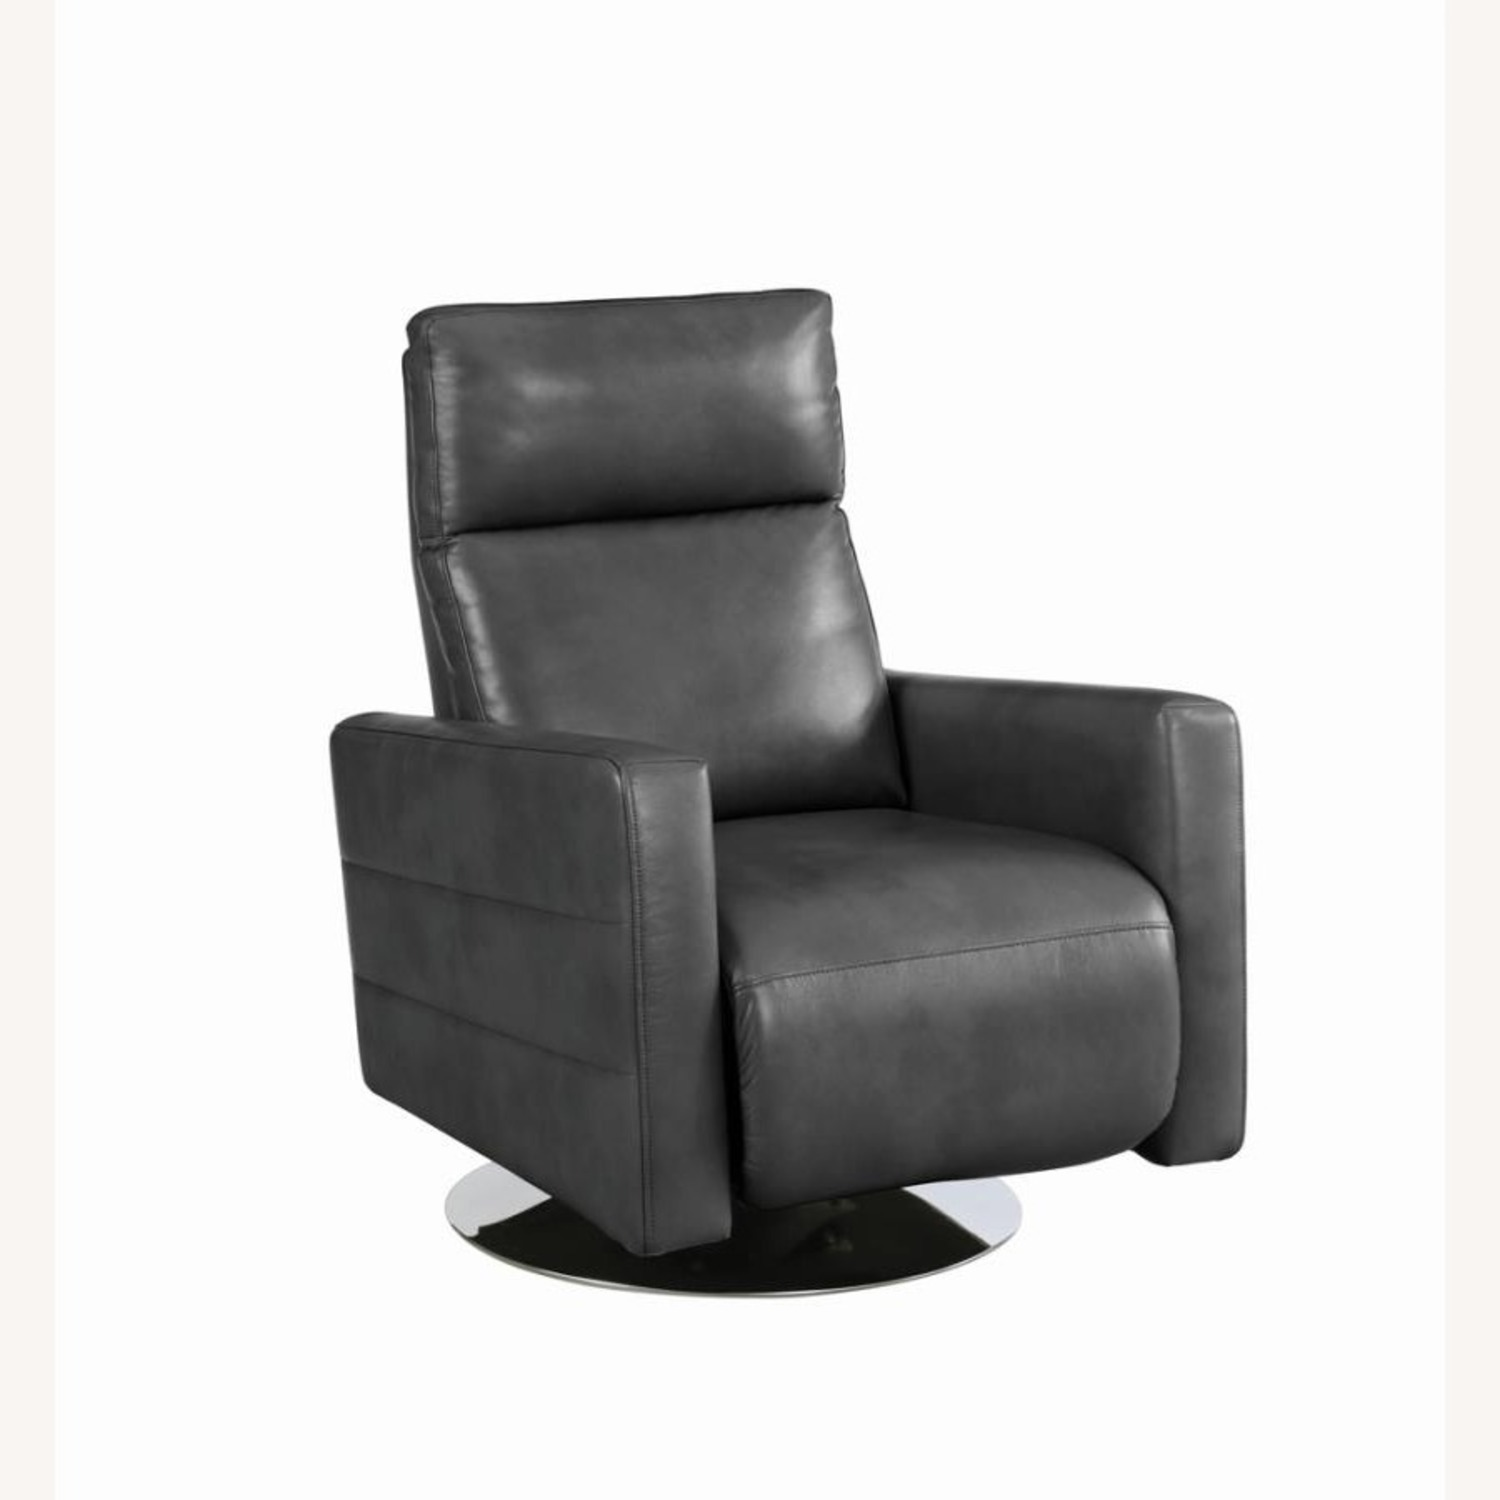 Swivel Recliner In Grey Performance - image-0